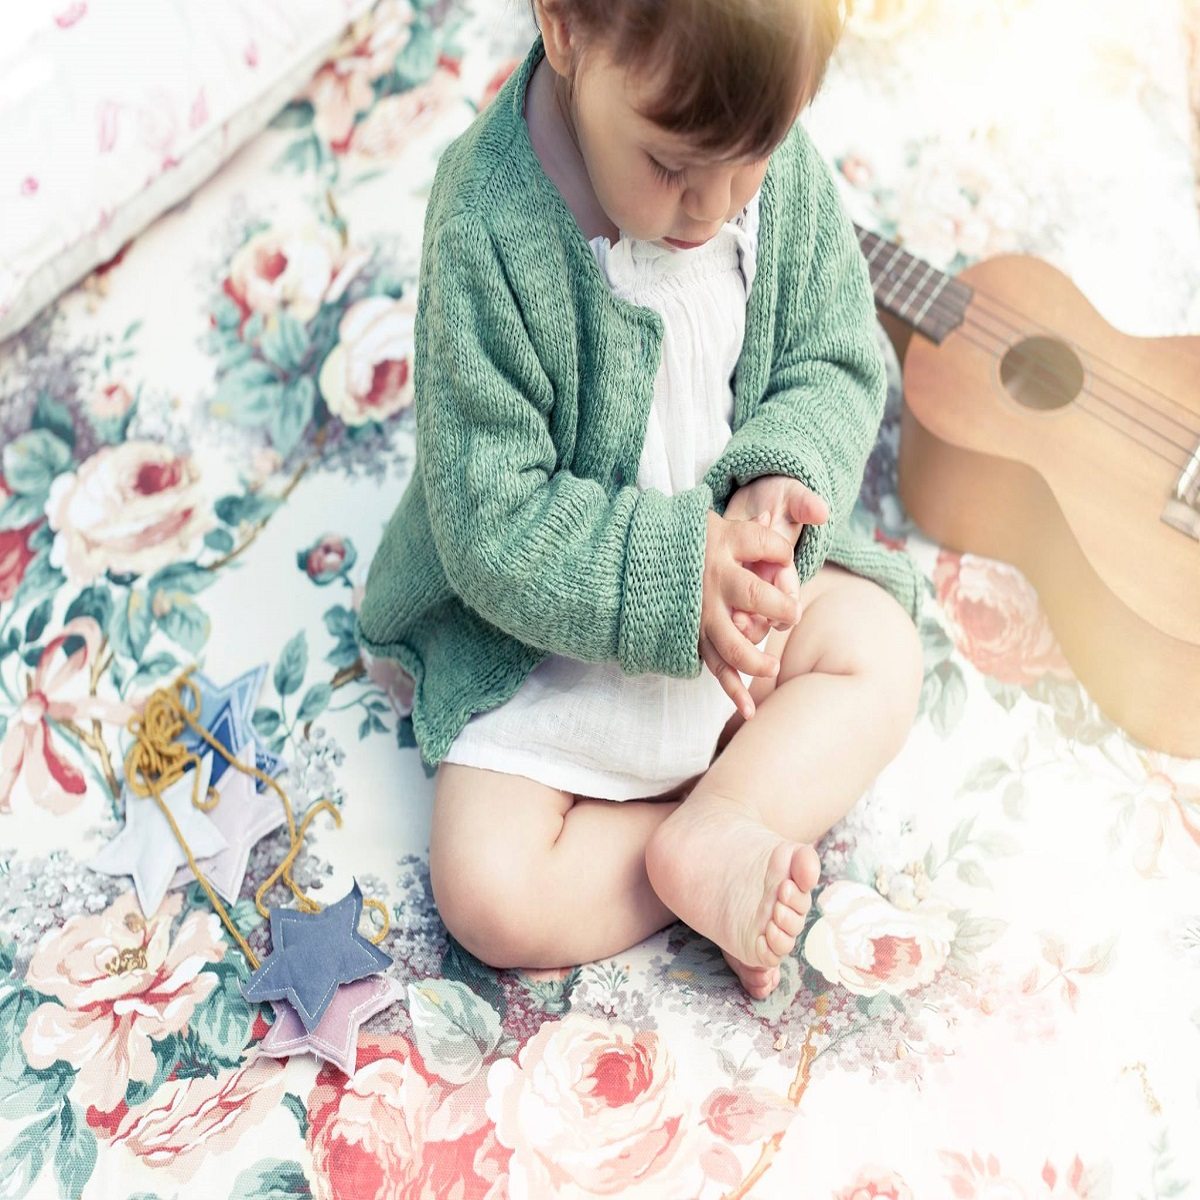 Child sitting on a blanket next to a guitar wearing Tocoto Vintage clothing